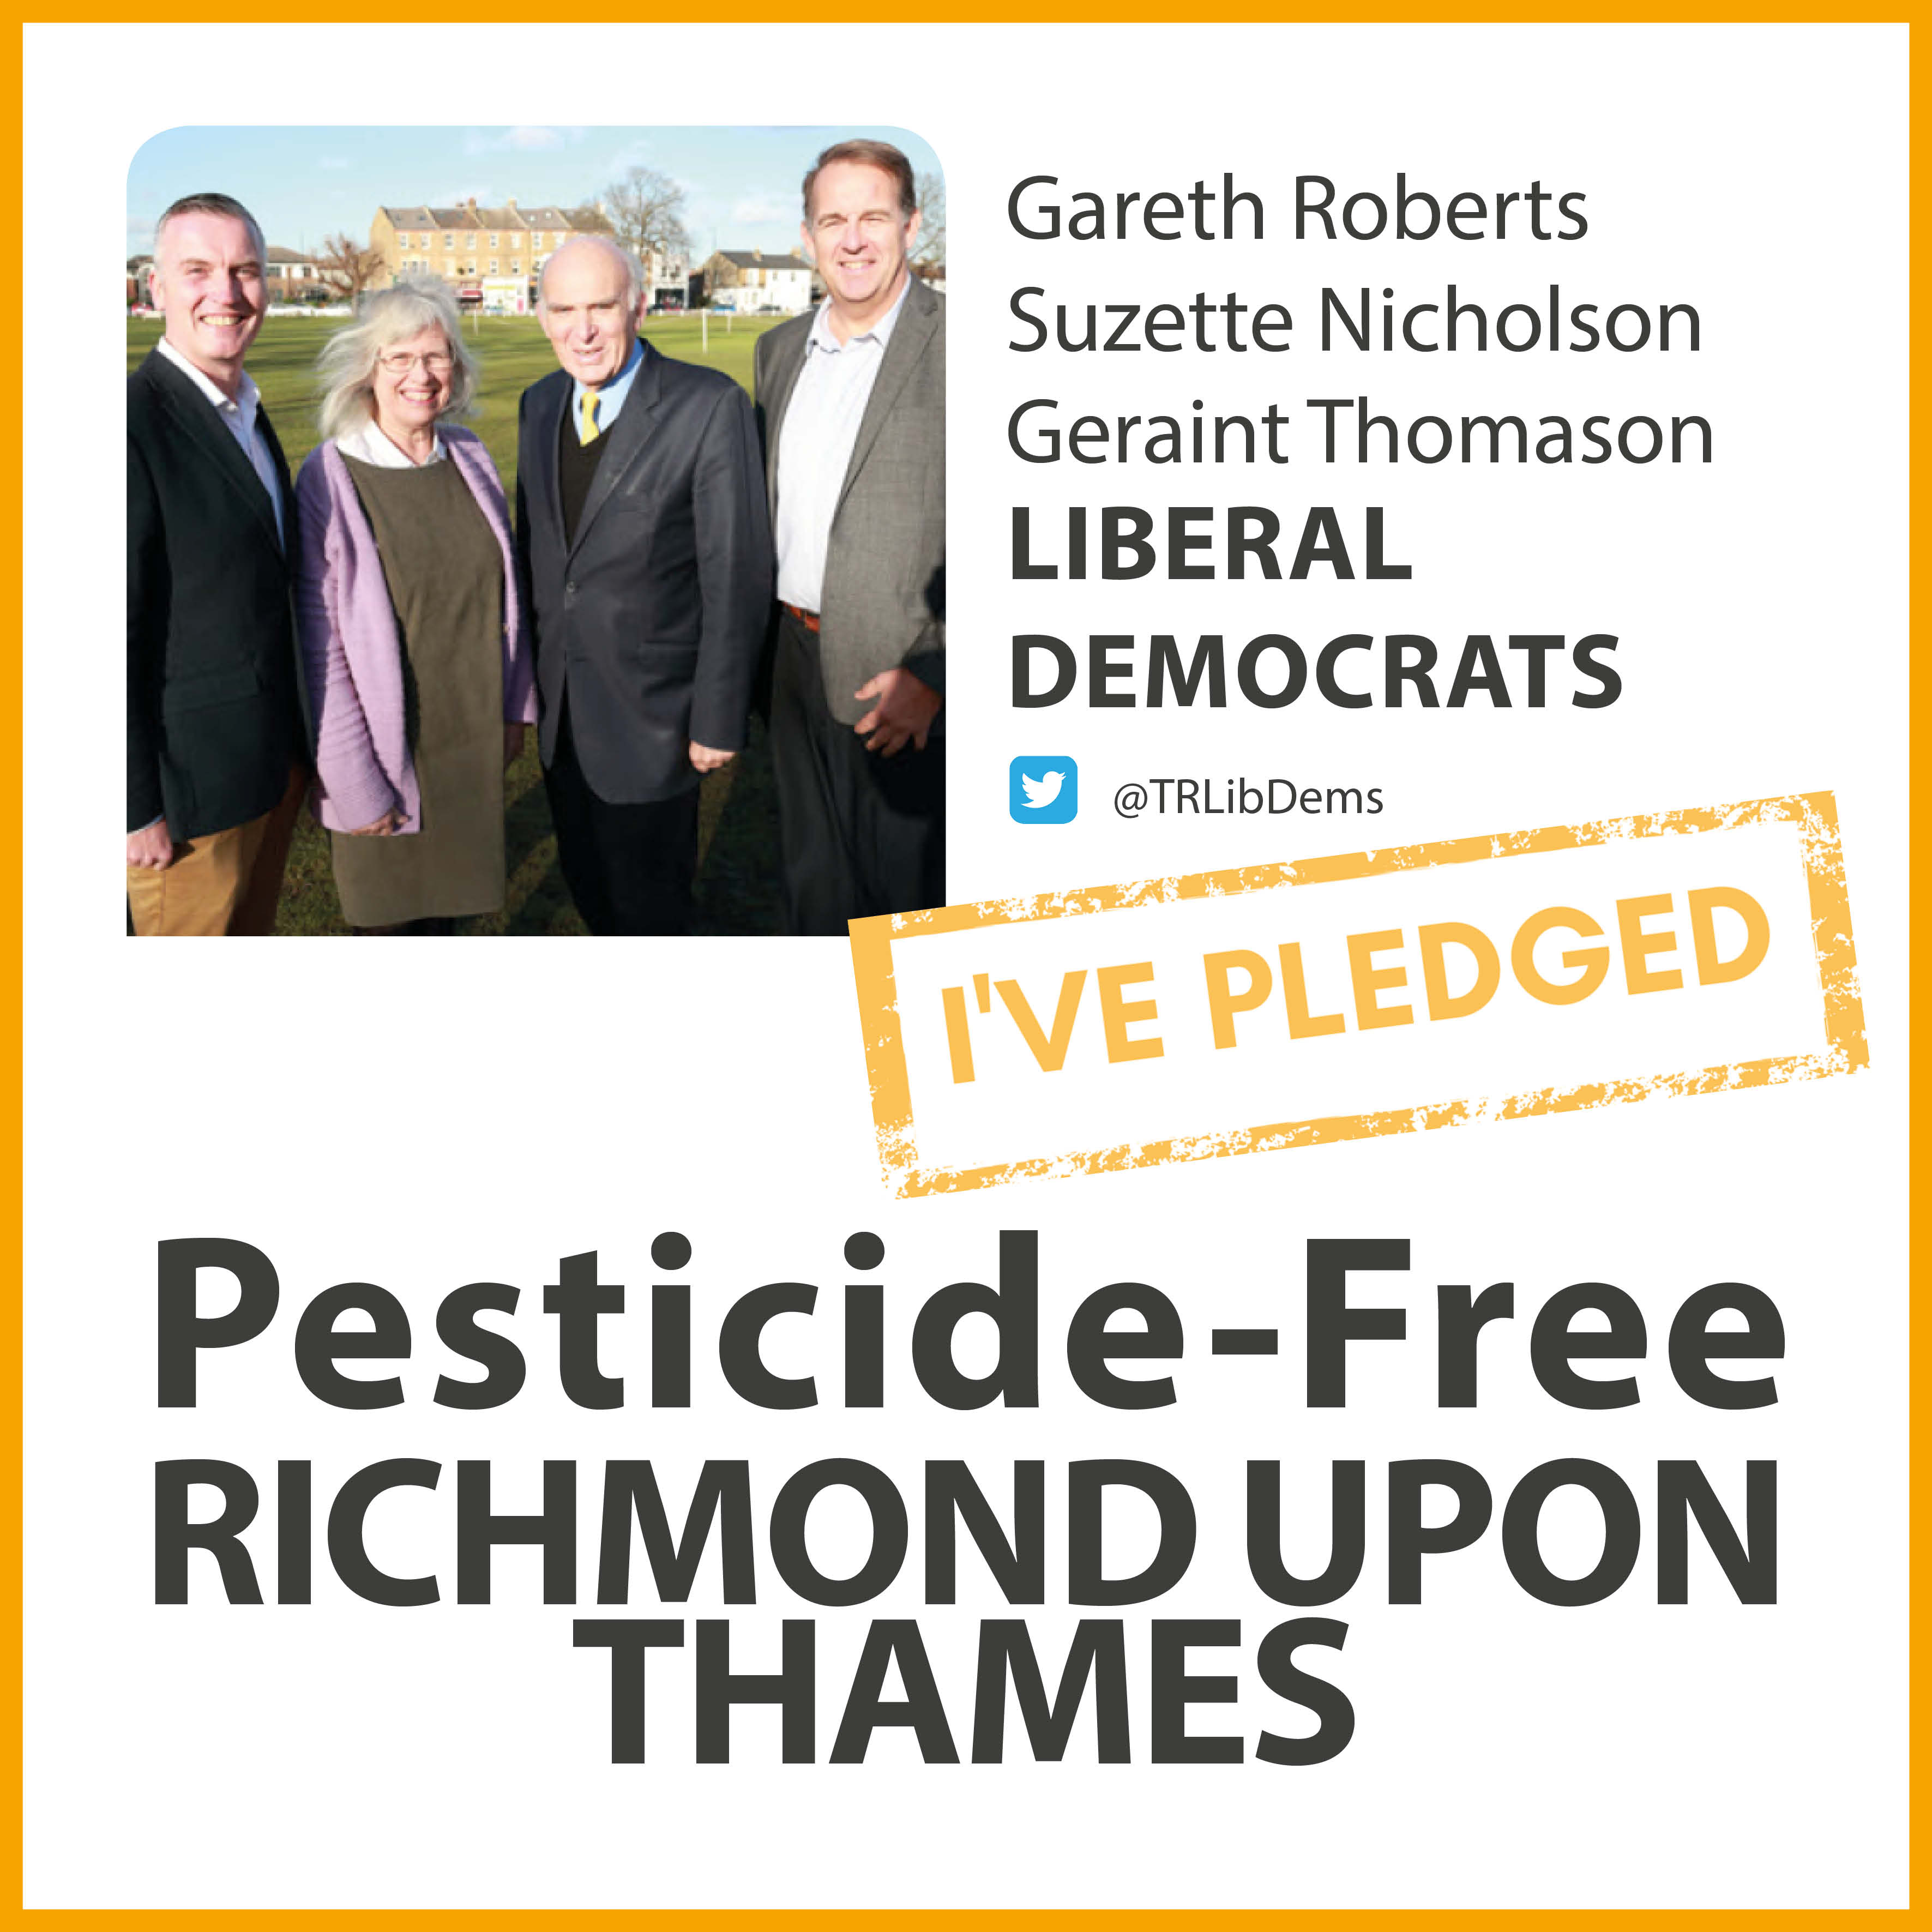 Hampton Lib Dems have taken the pesticide-free pledge